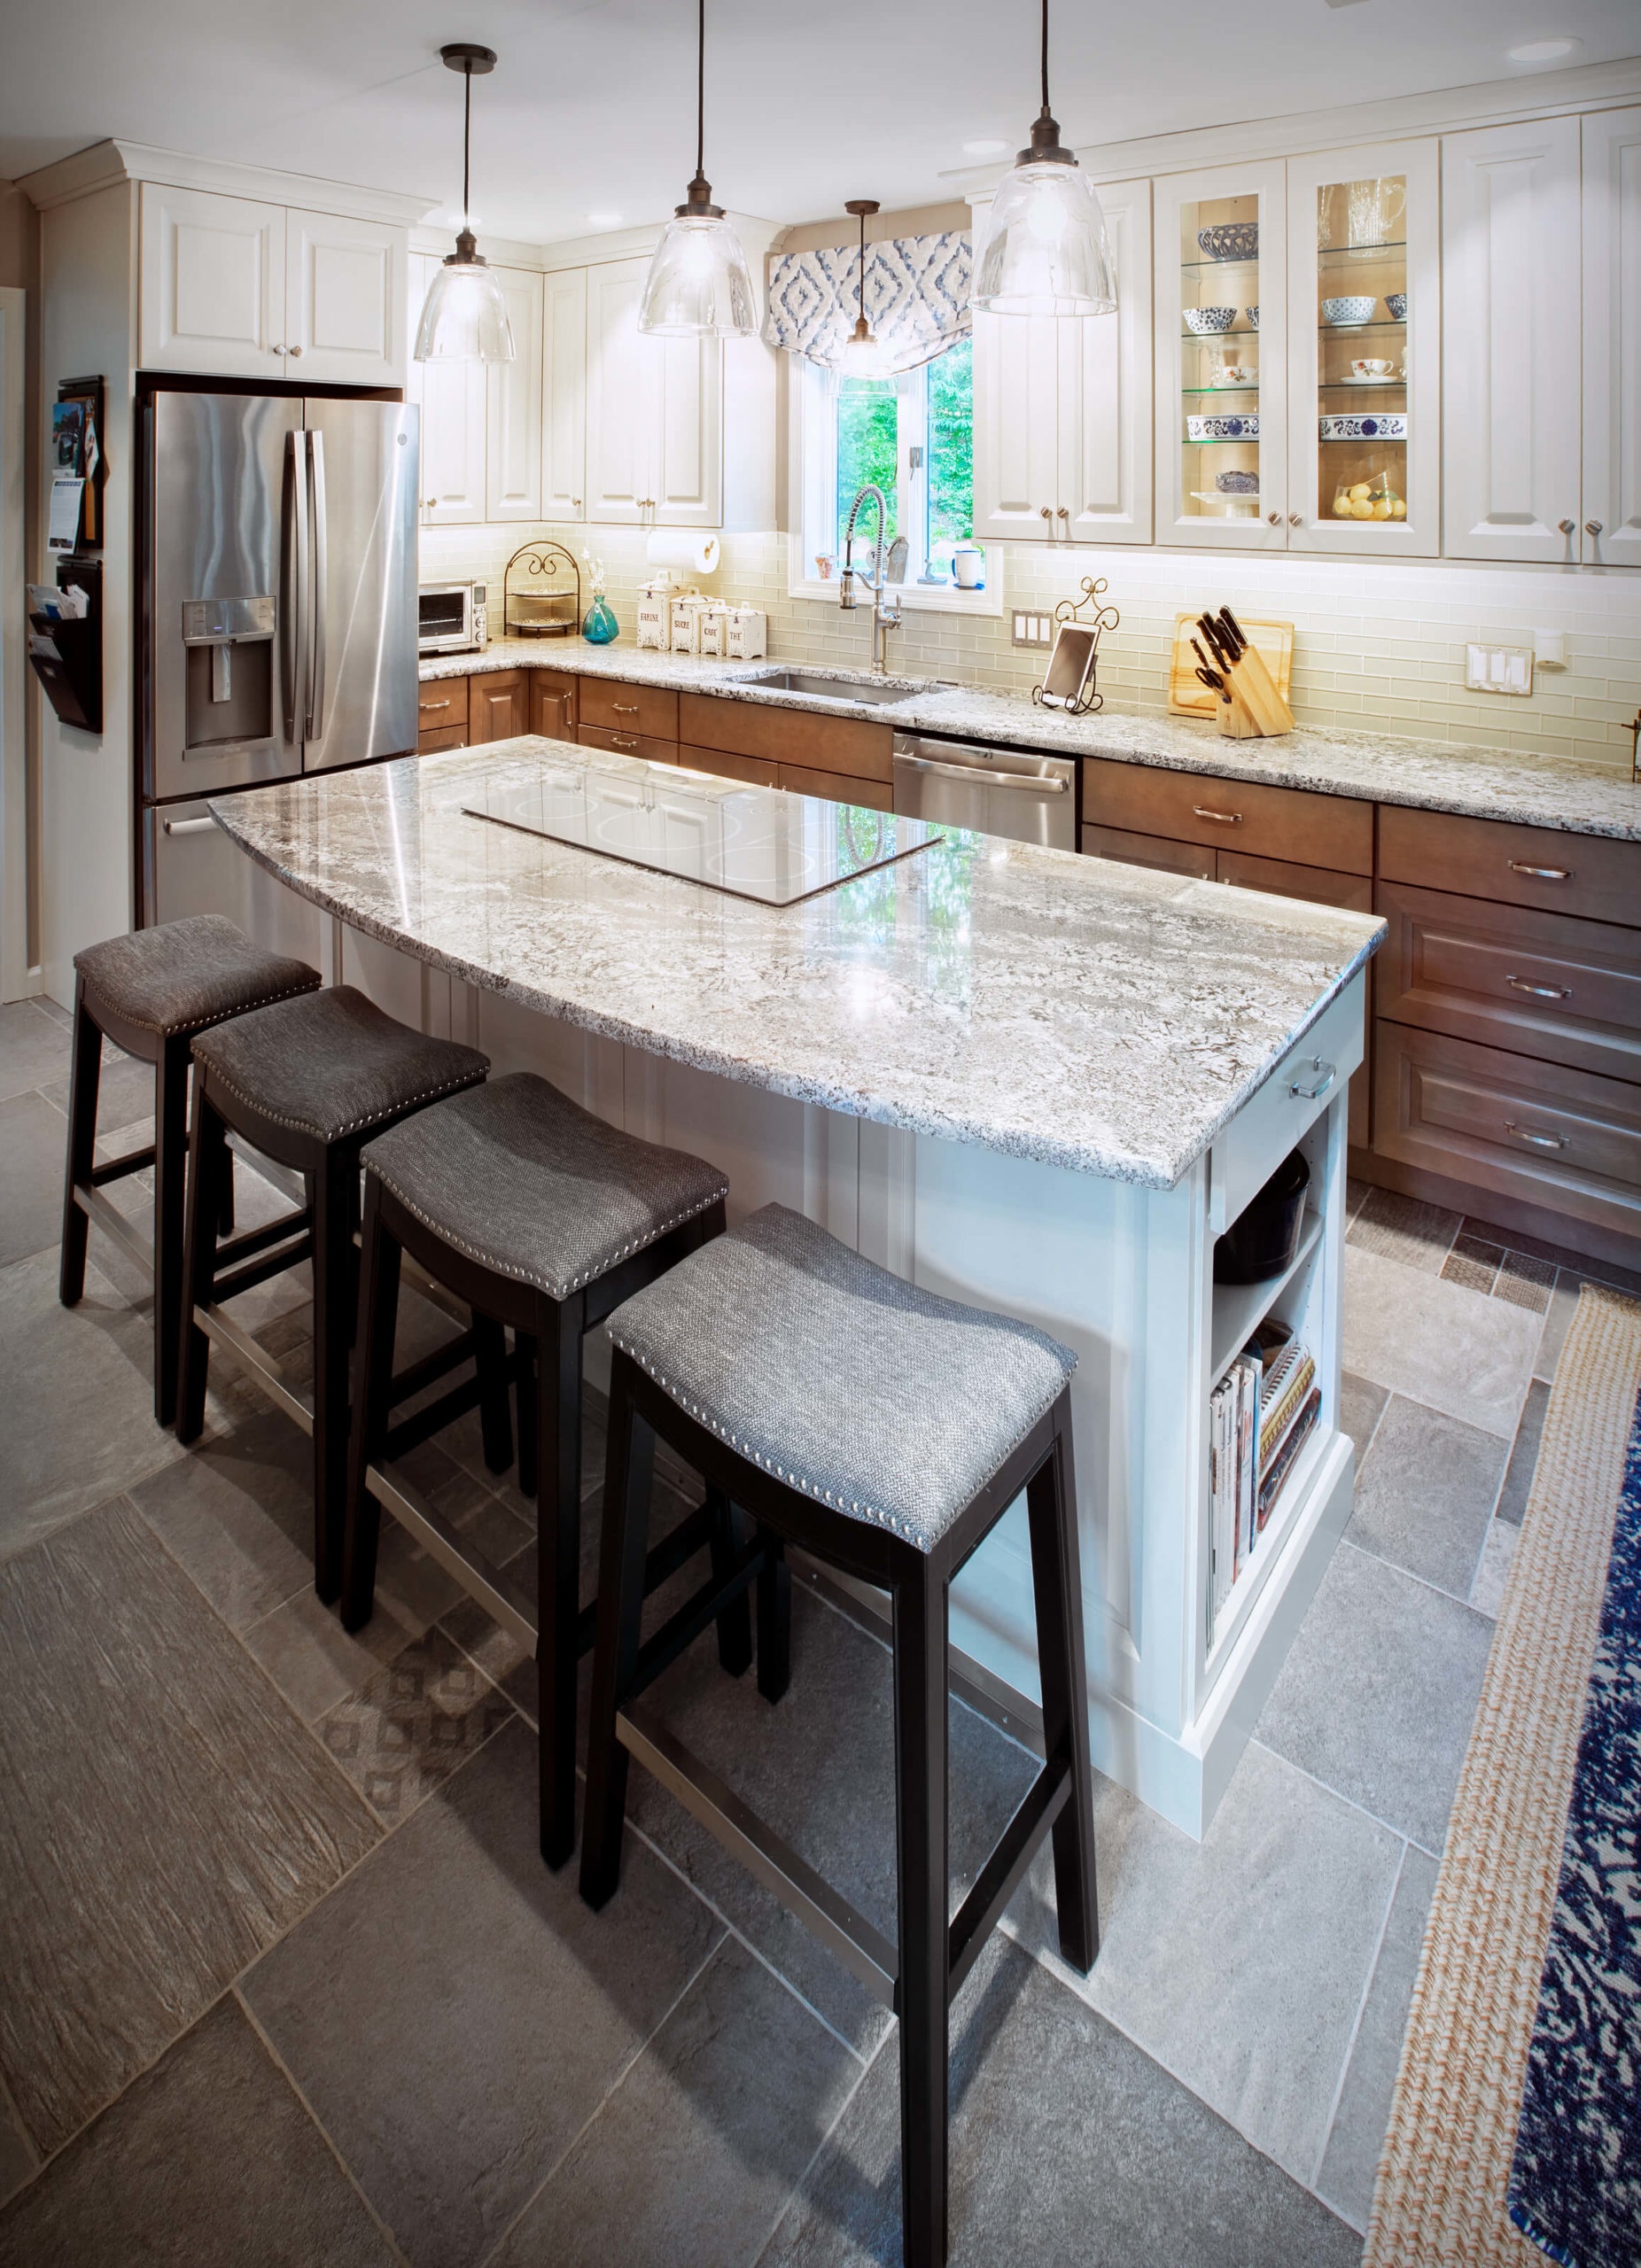 Burlington kitchen remodel perimeter cabinets, island, backsplash and countertops.